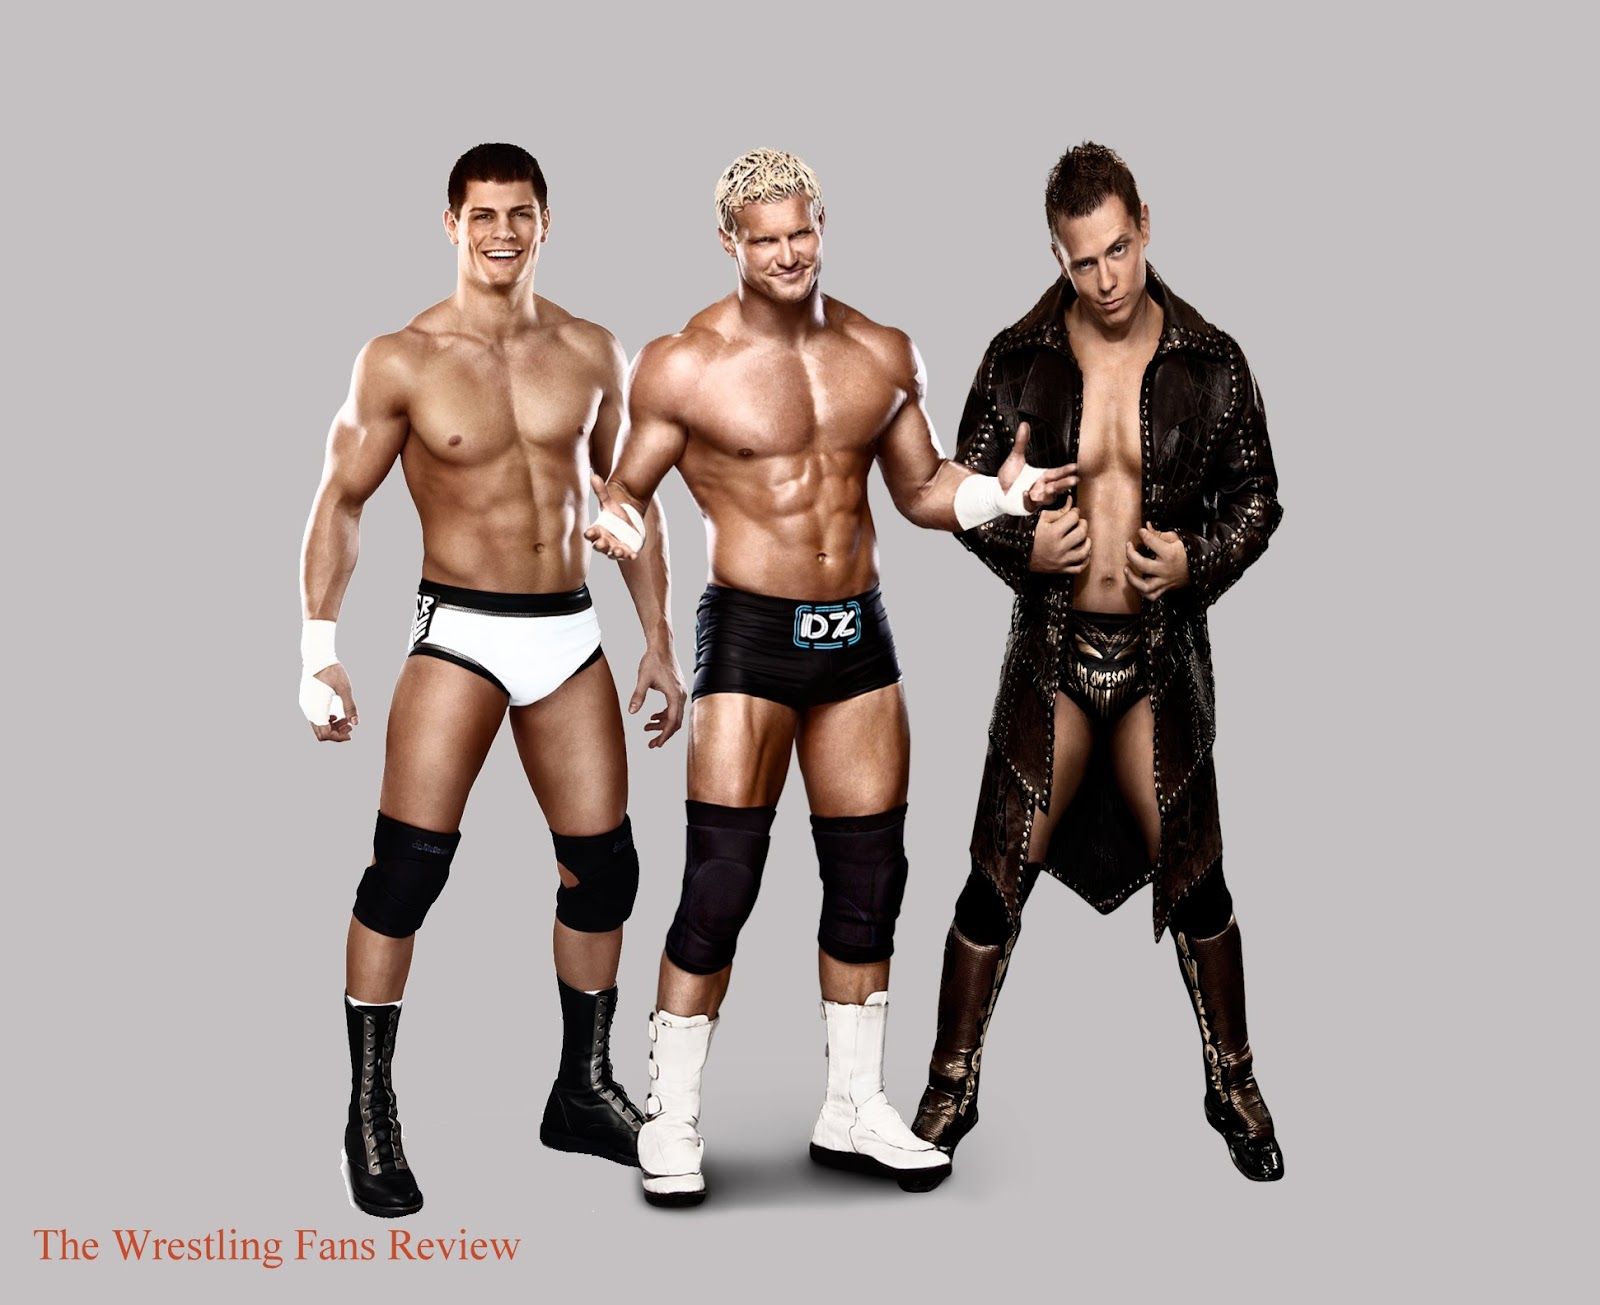 All Wwe Wrestlers 2013 2013 has just begun and thereAll Wwe Wrestlers 2013